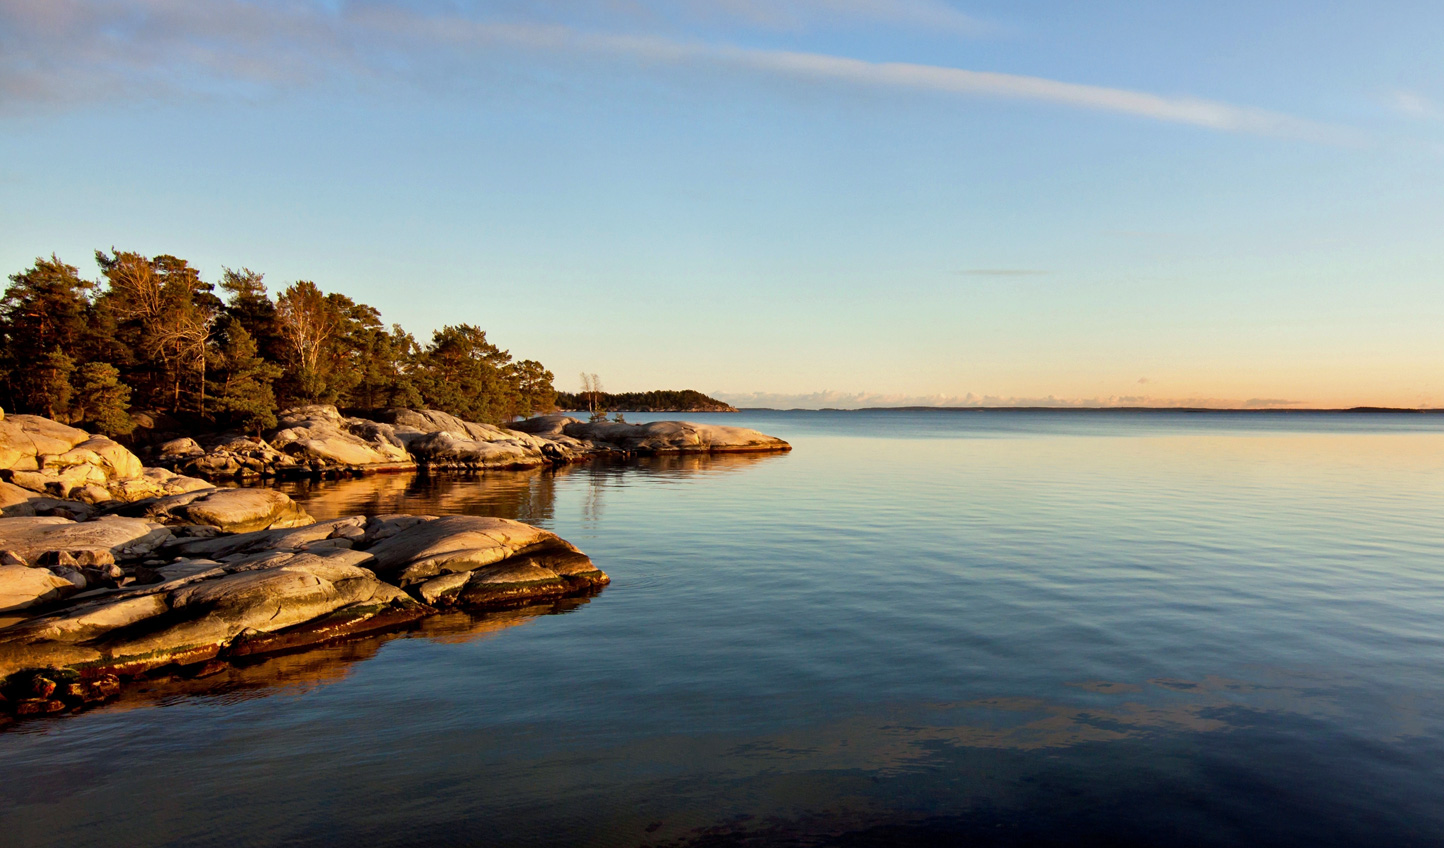 Find a peaceful spot out in the archipelago